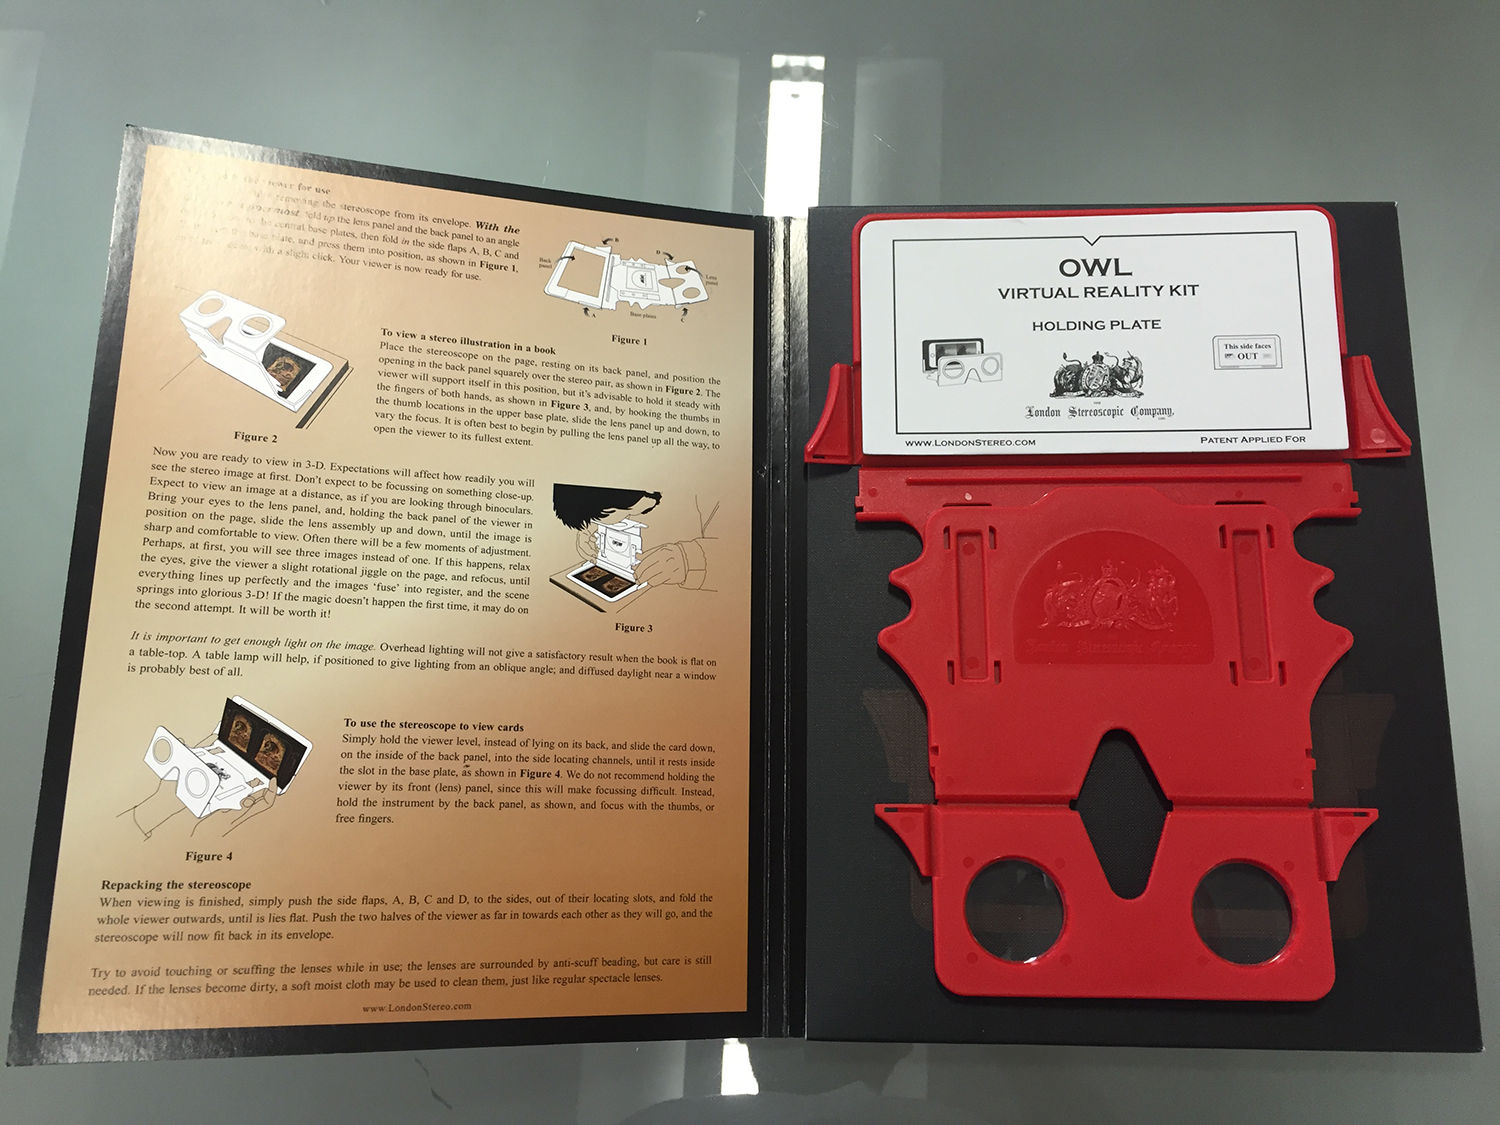 The Owl, in flat-pack form, with its packaging/assembly instructions.